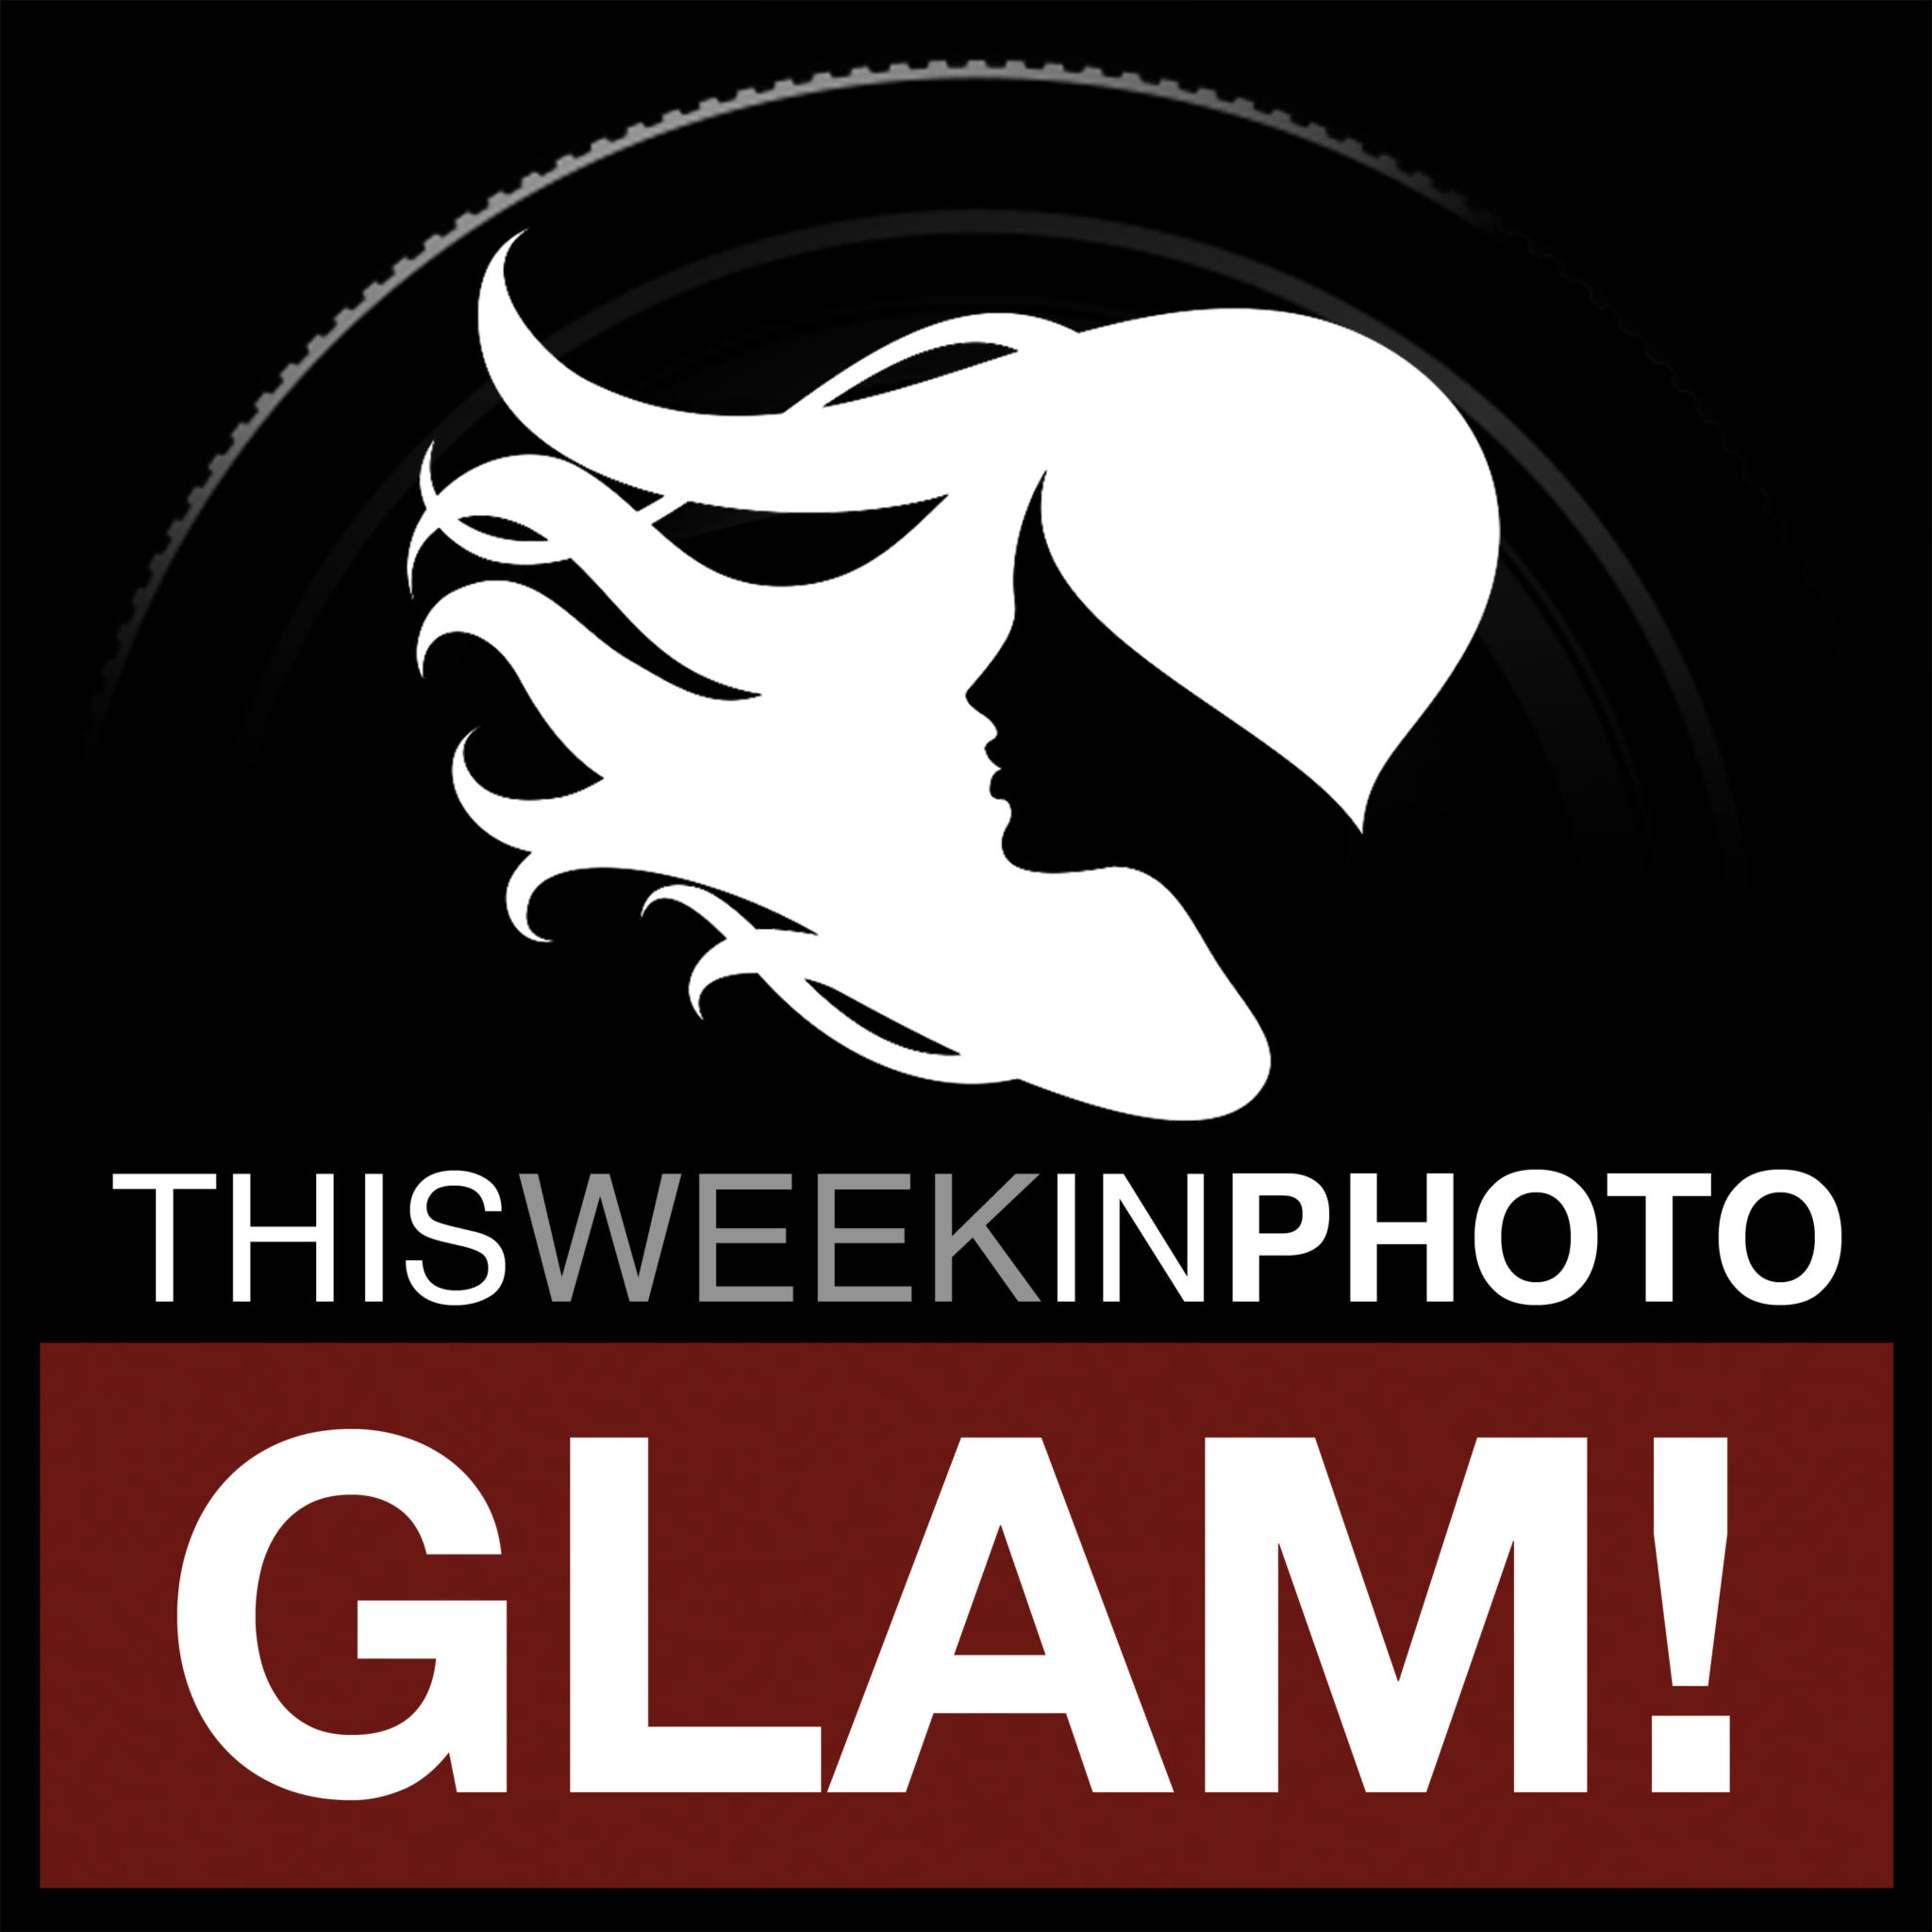 TWiP GLAM! – This Week in Photo